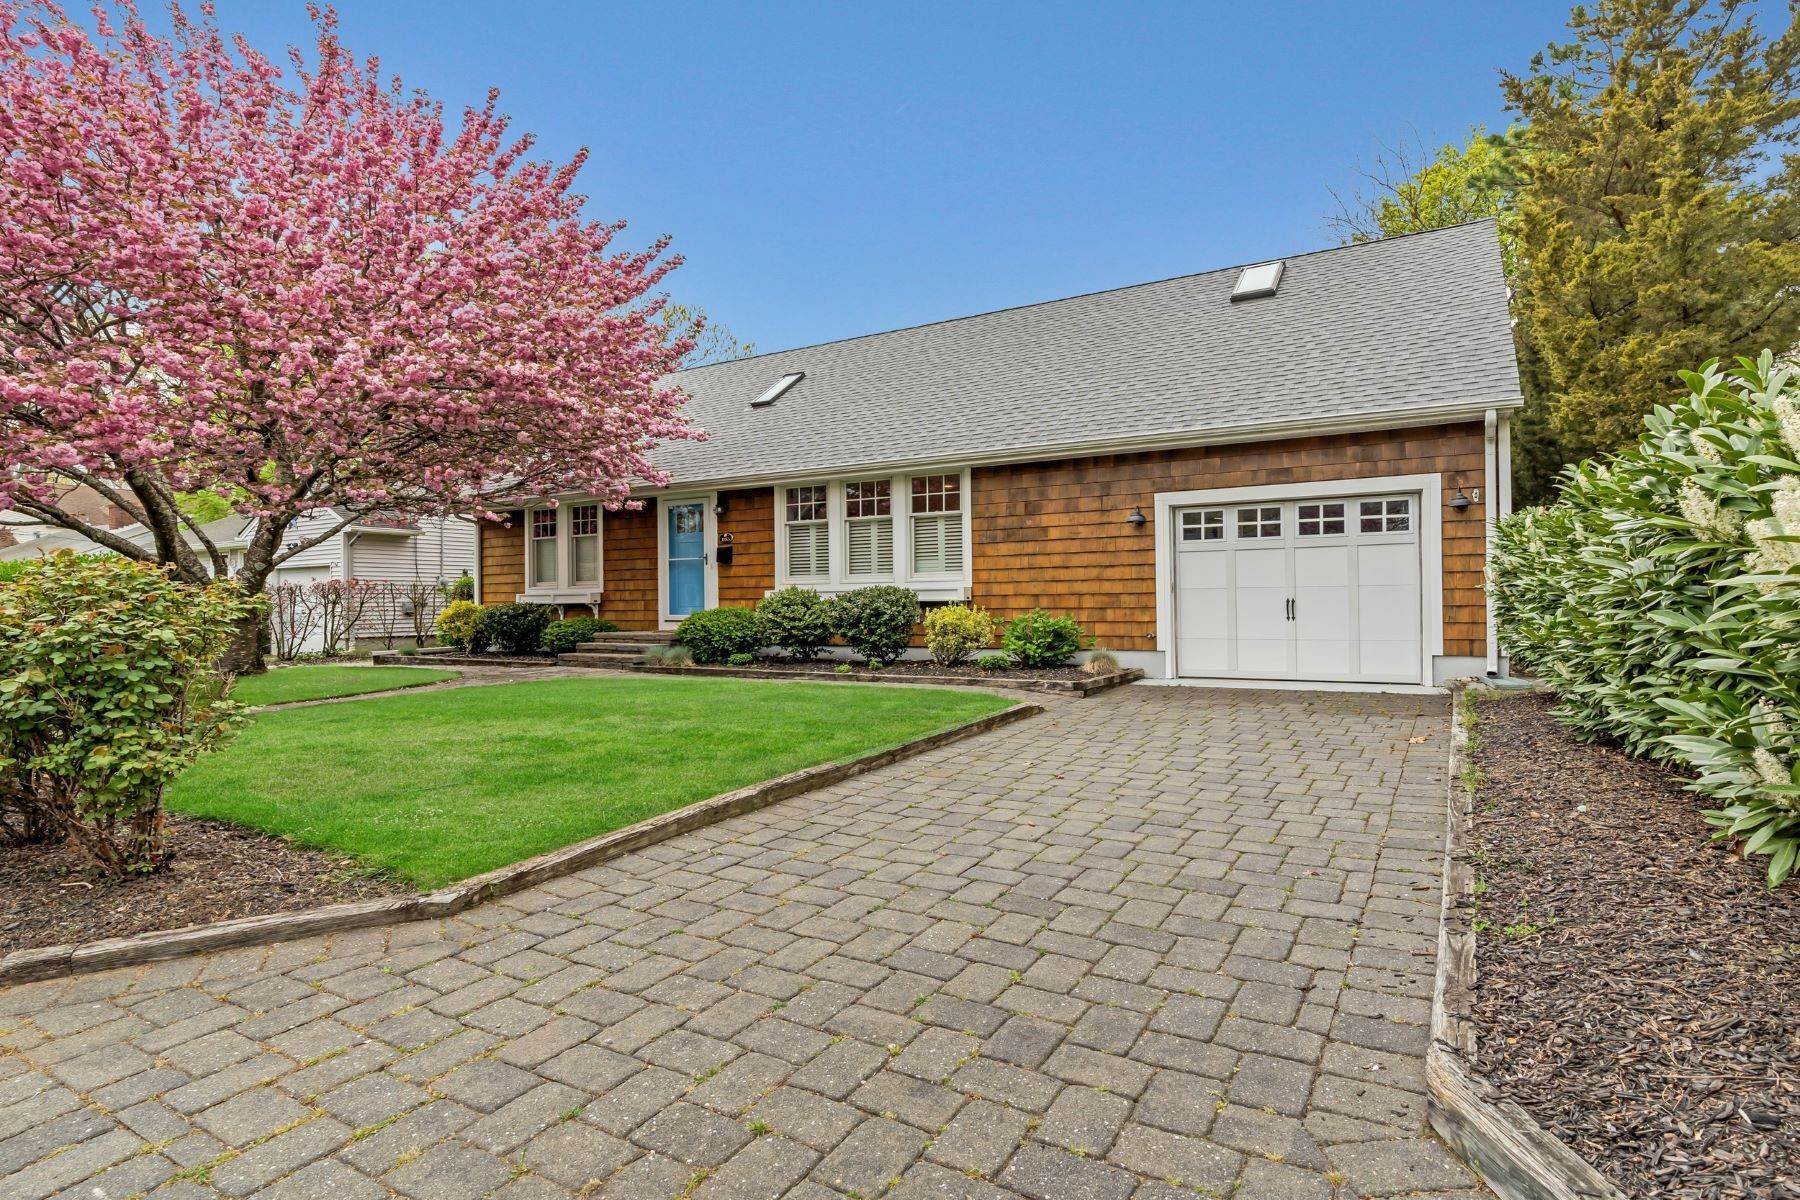 Single Family Homes for Sale at Picture Perfect 1153 Pine Bluff Avenue, Point Pleasant, New Jersey 08742 United States